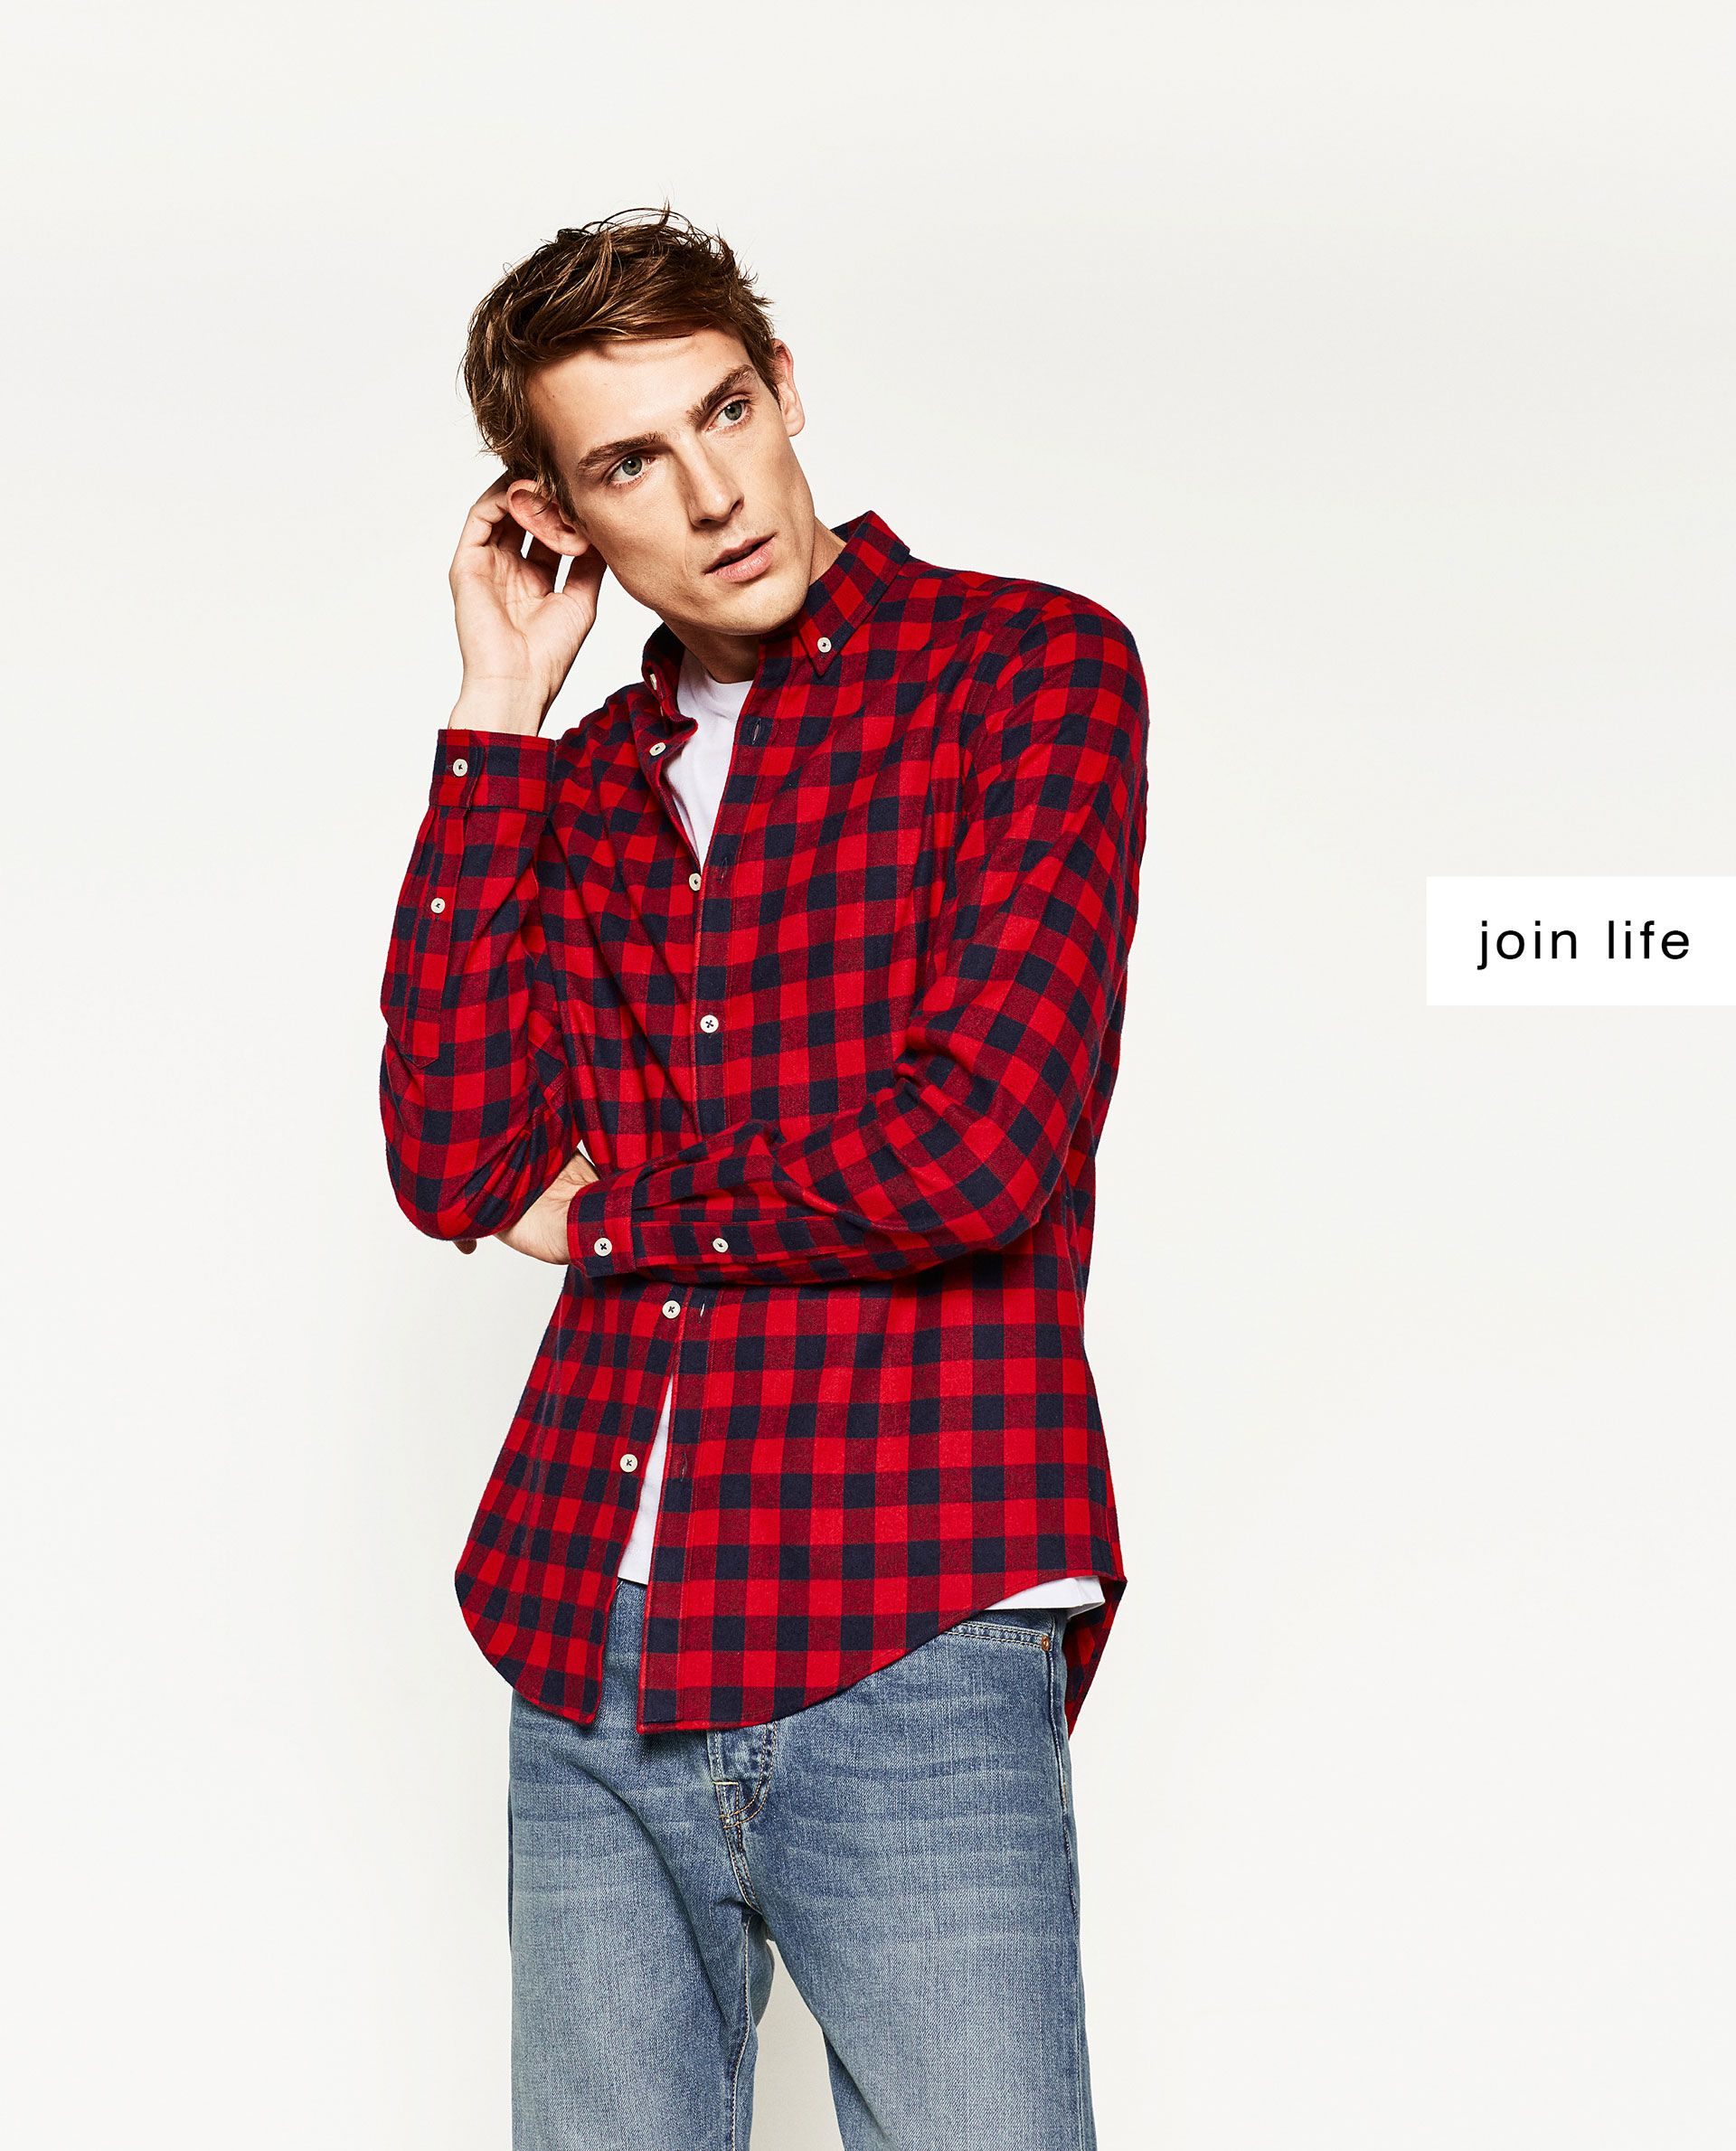 Zara flannel shirt mens  FLANNEL SHIRT joinlife  Available in more colours  DAILY GRINDS